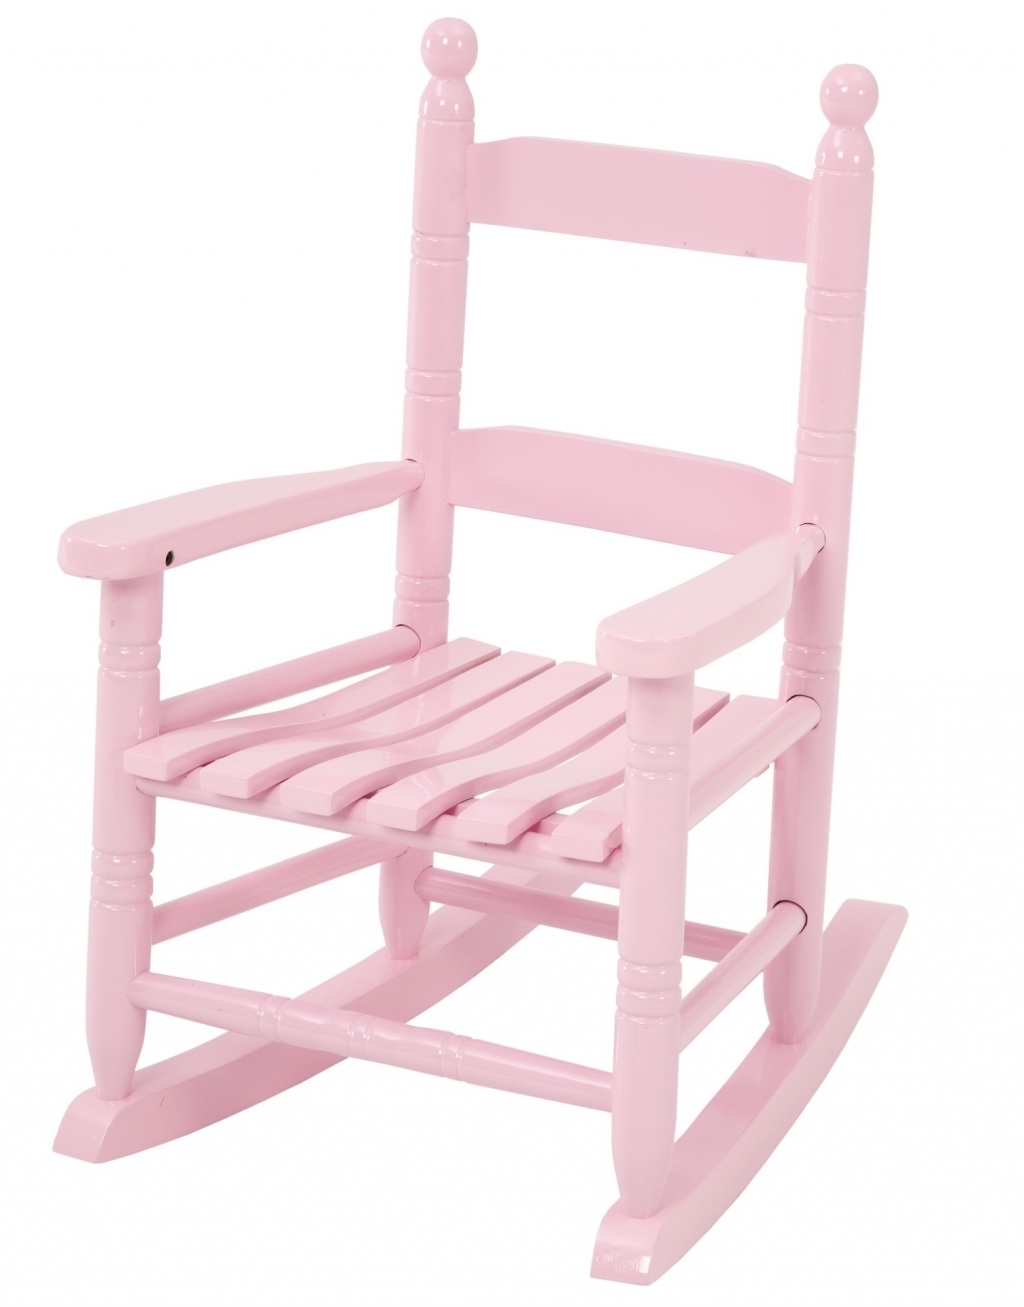 Furniture: Childrens Rocking Chairs Luxury Jack Post Pink Childrens Within Trendy Rocking Chairs For Toddlers (View 6 of 15)